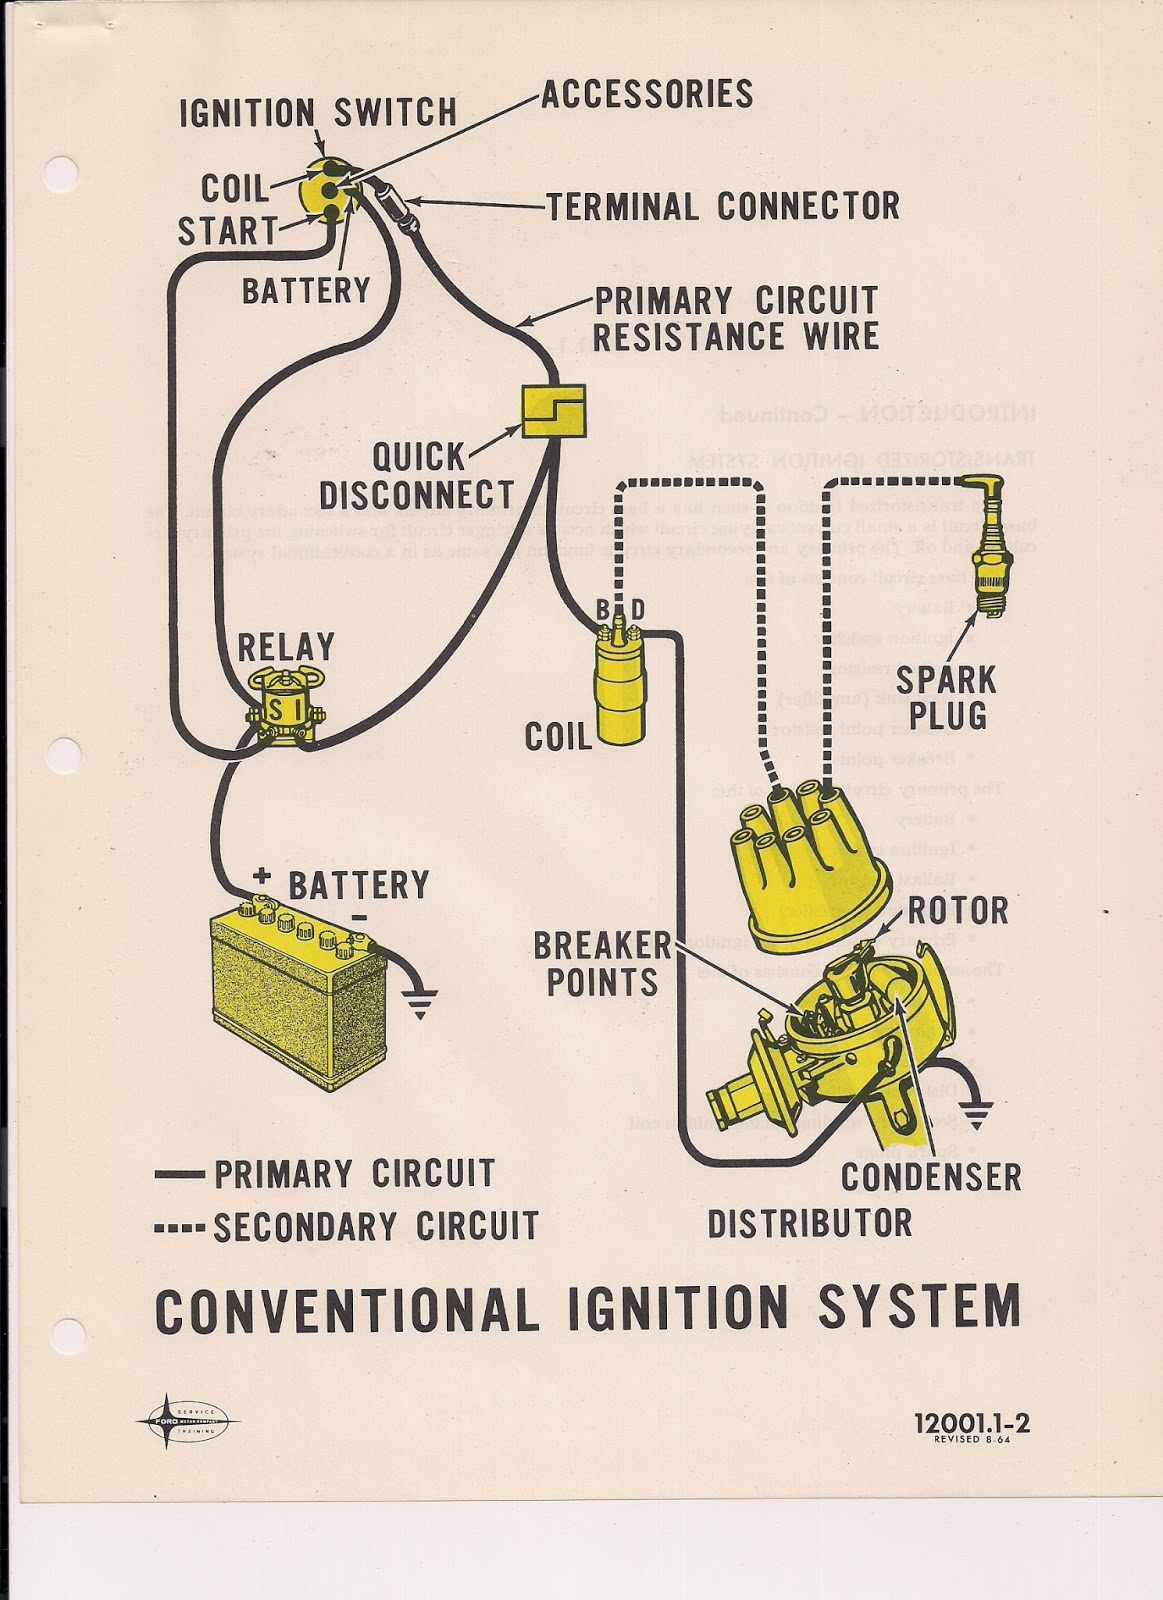 Ignition System Wiring Harness Another Blog About Diagram Ford Ranger Starter Motor 1967 Mustang Coil 1957